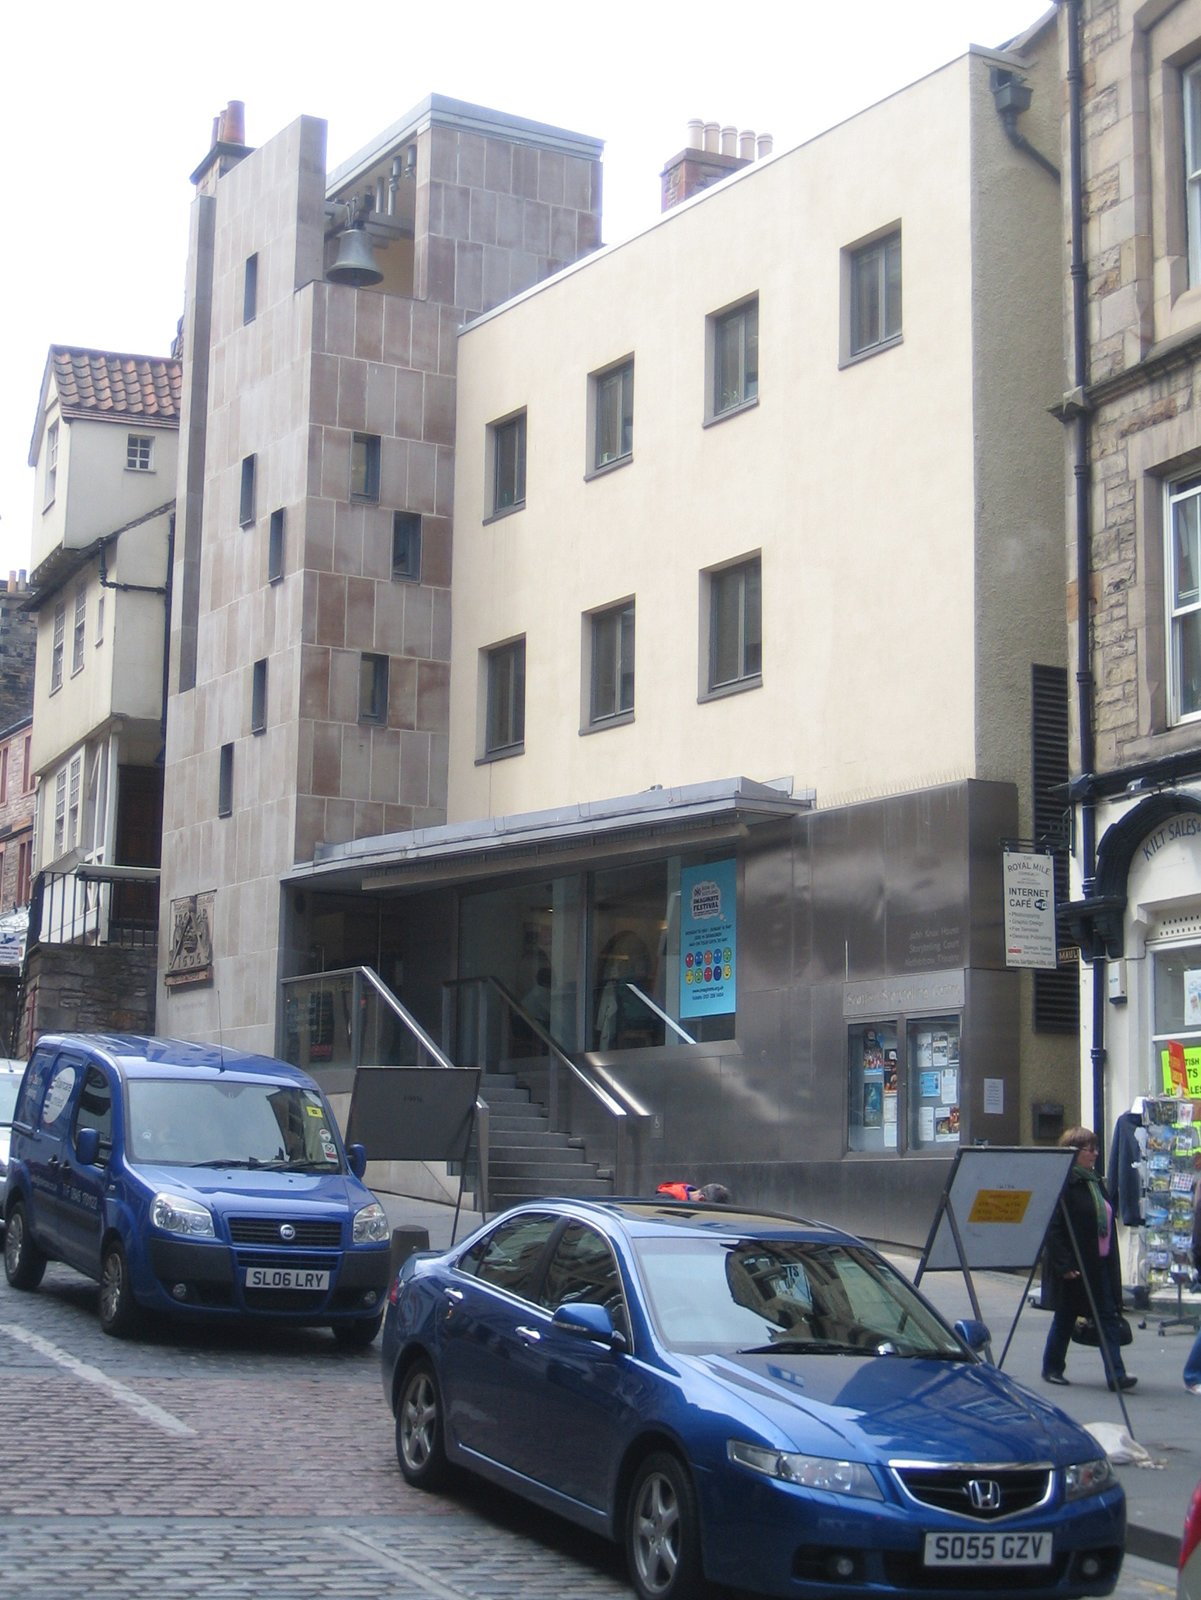 I passed by the Scottish Storytelling Project building by Malcolm Fraser on High Street today.  Photo 7 of 11 in Scotland: Day 2